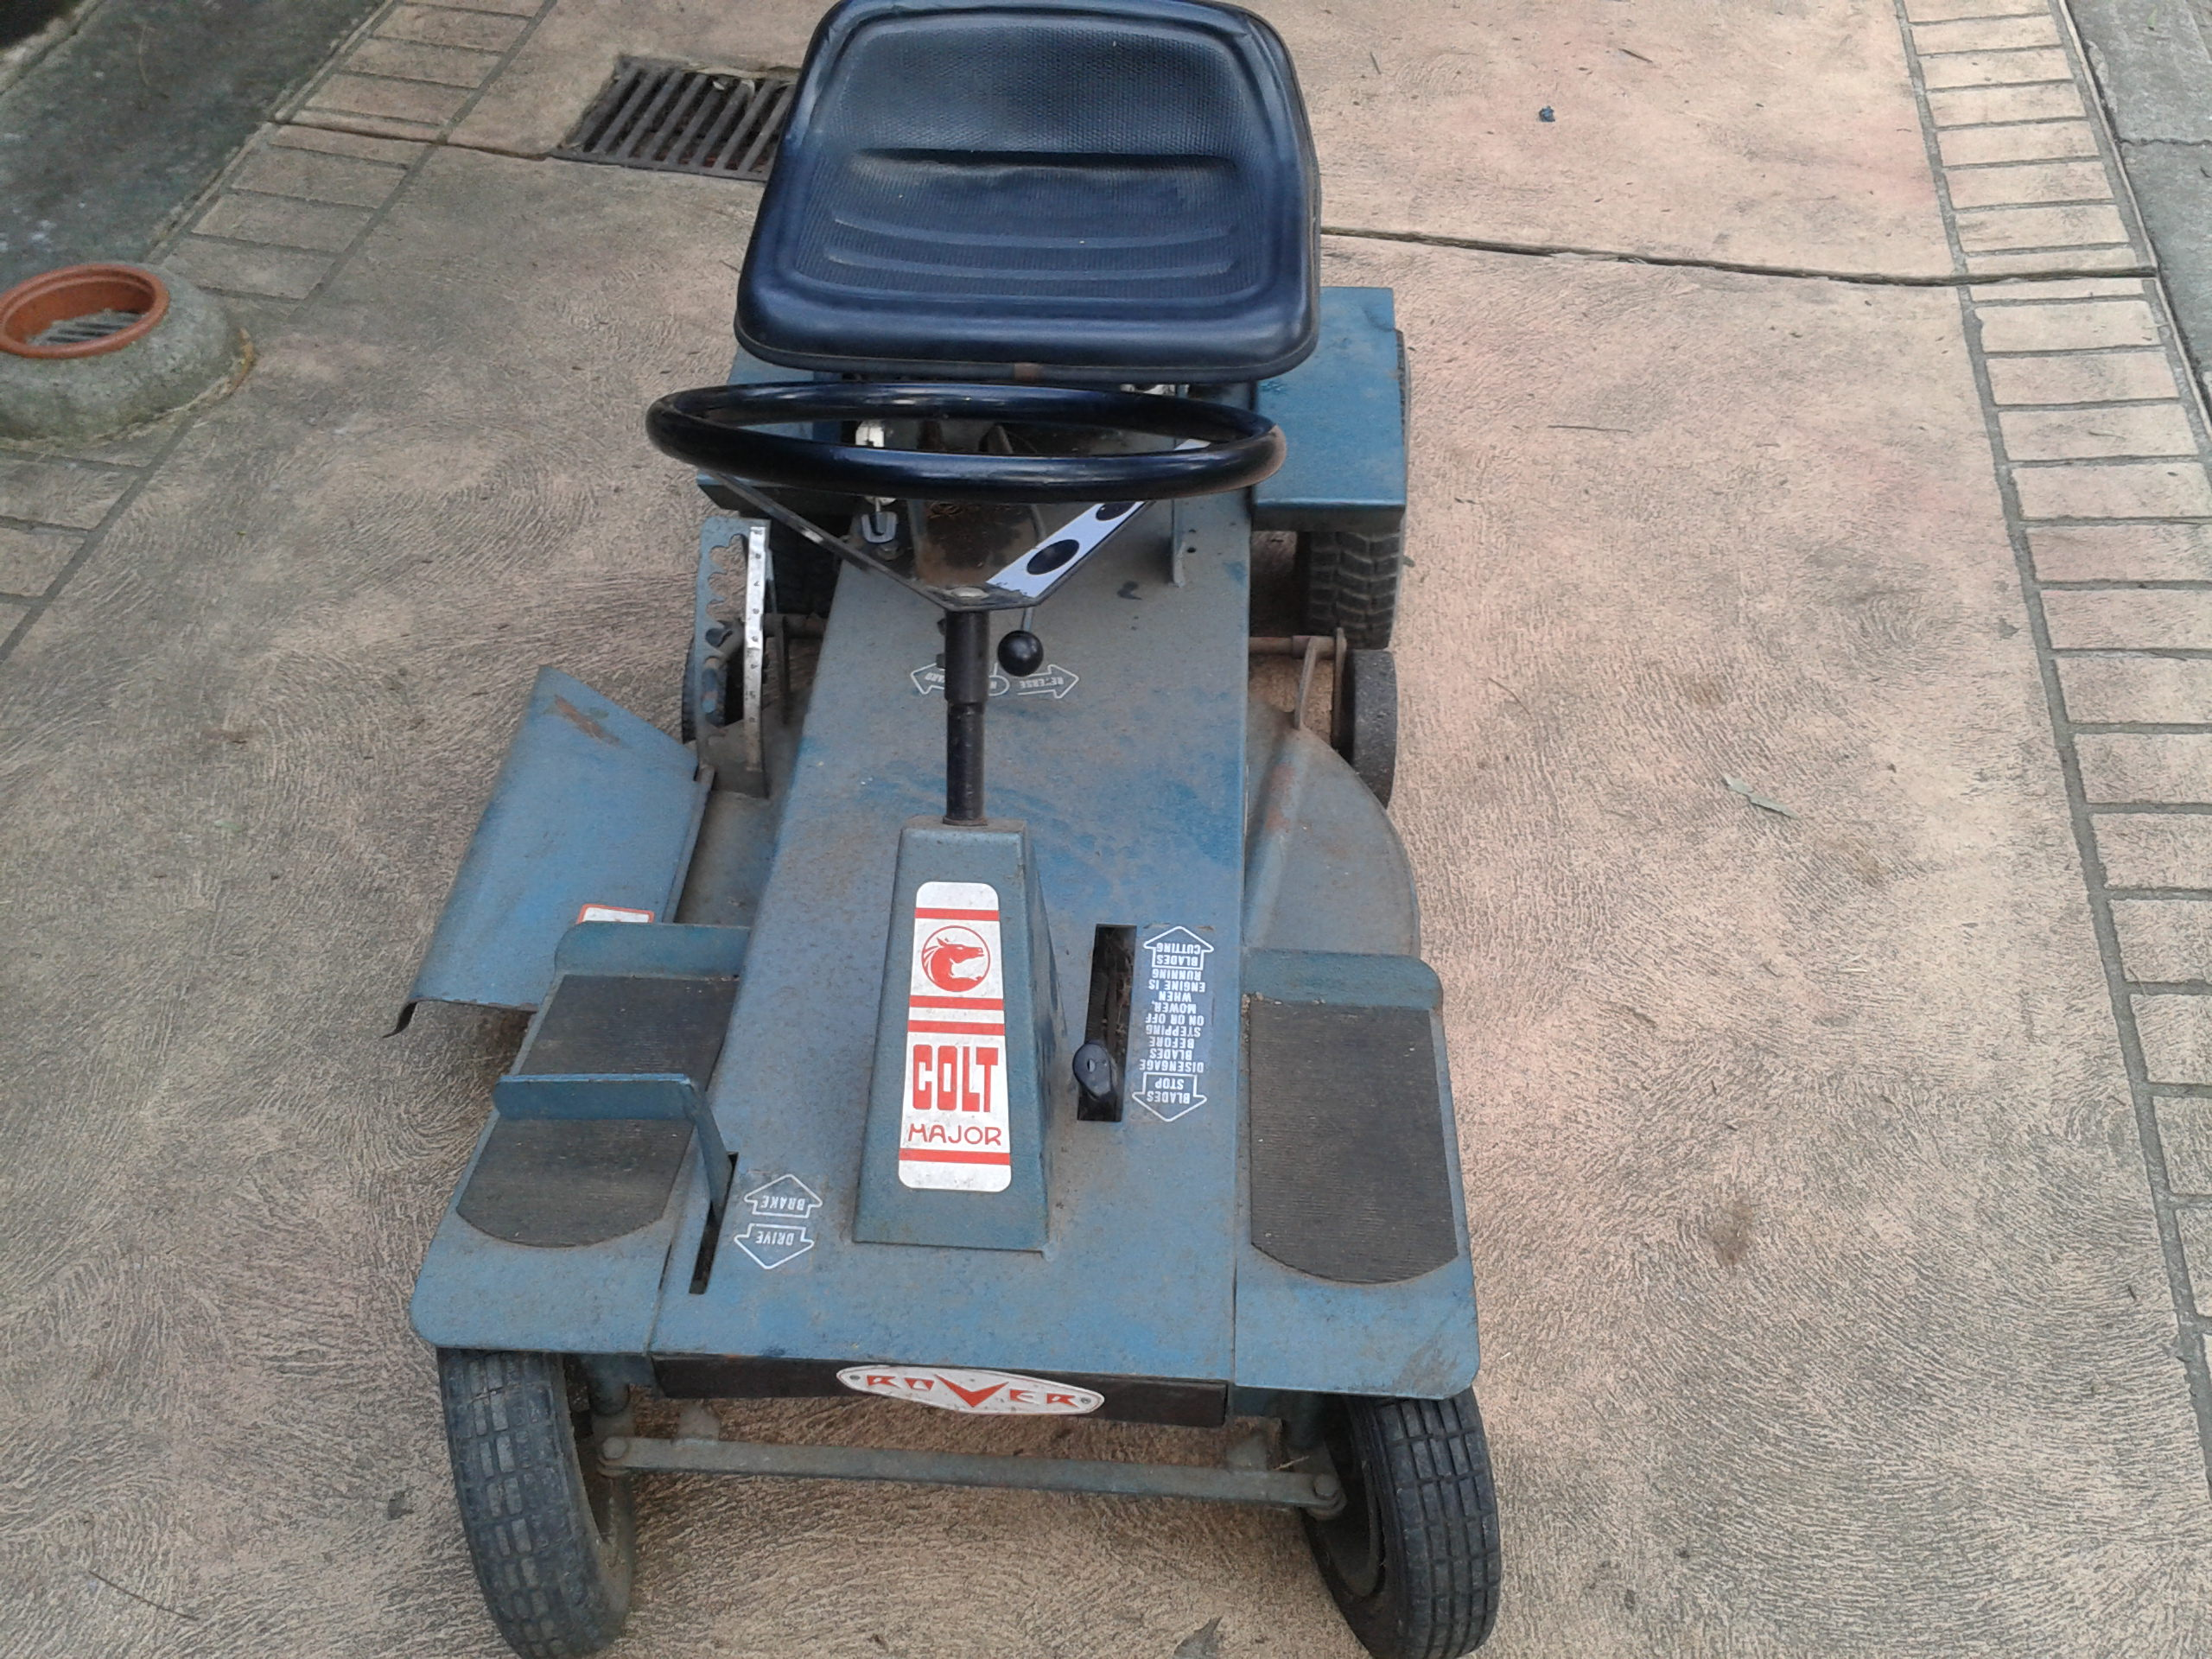 Rover Colt Major Ride On Outdoorking Repair Forum